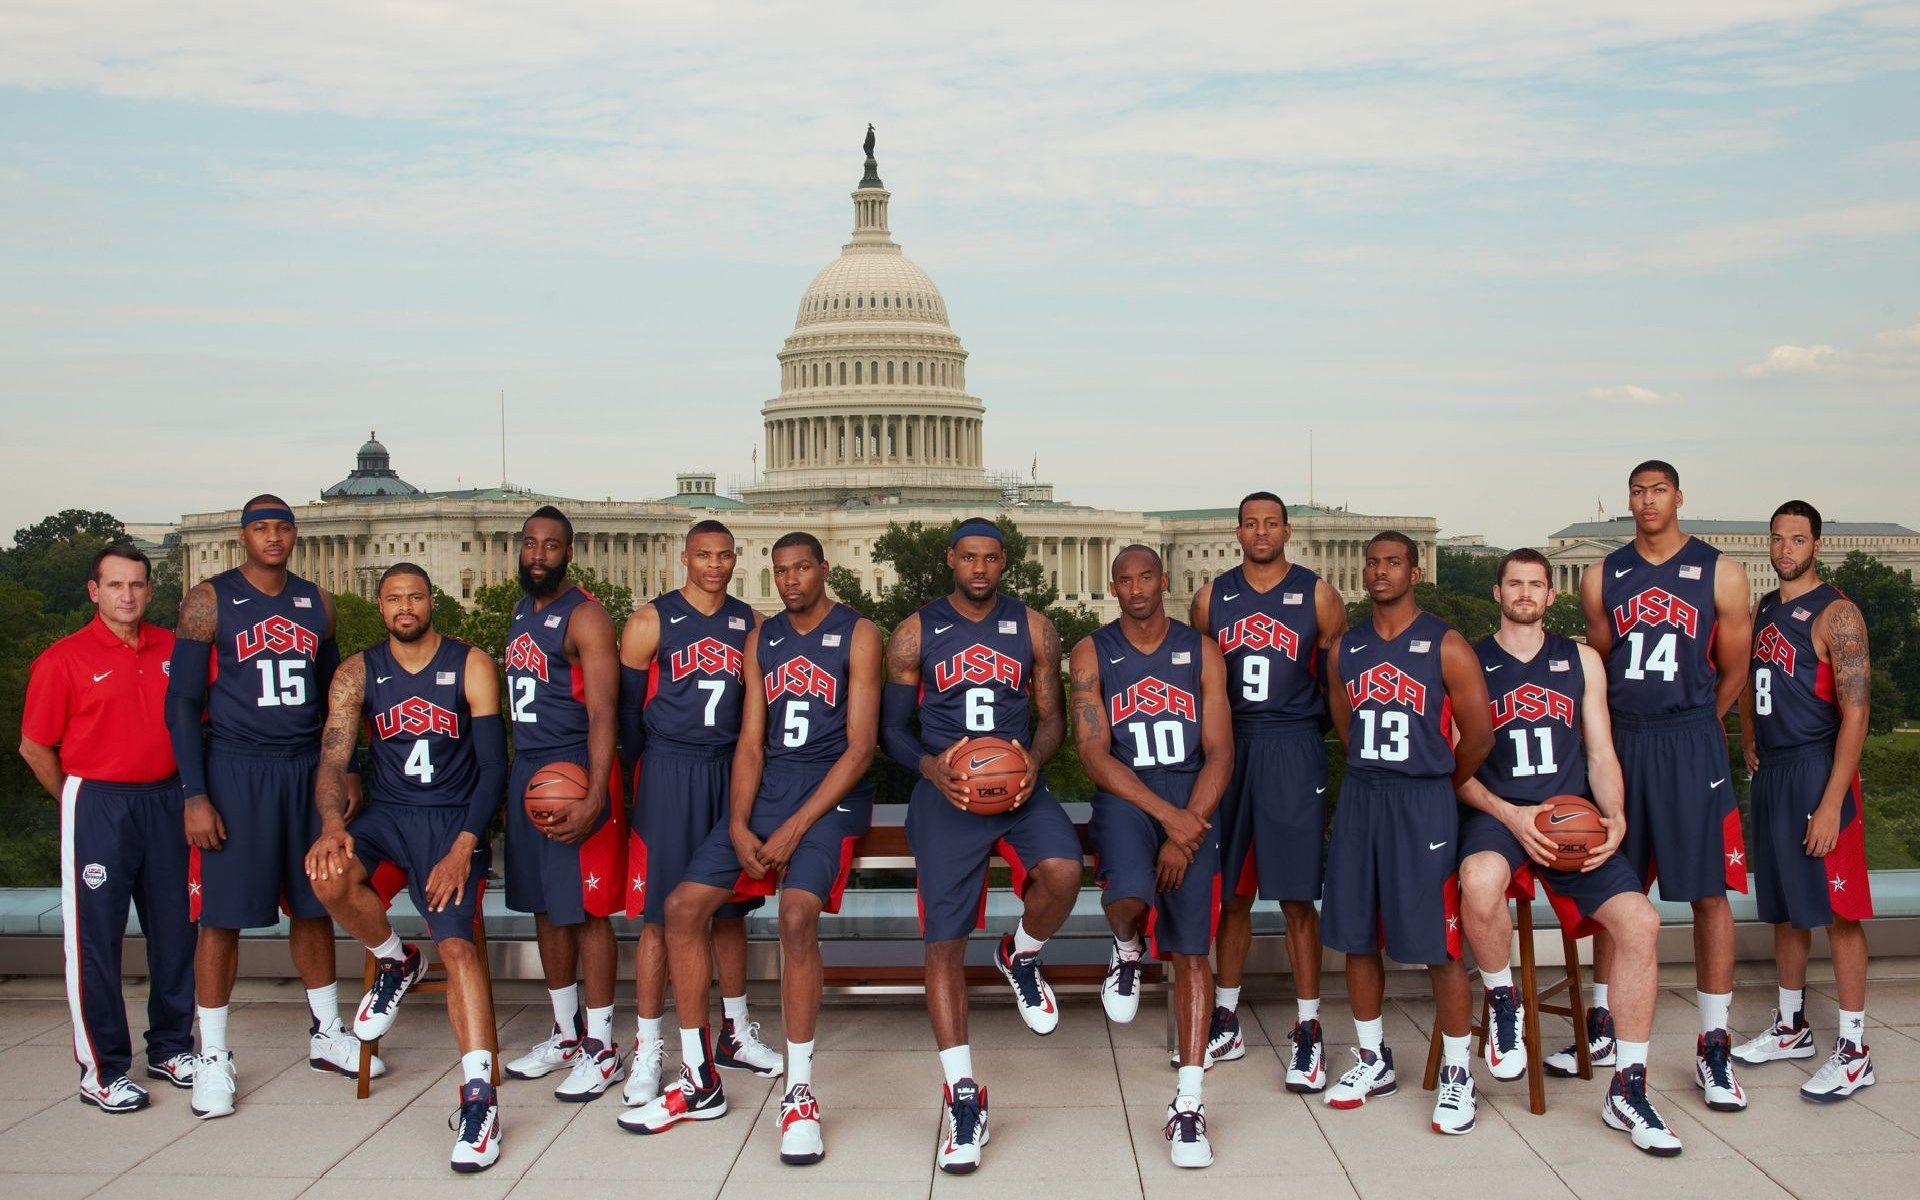 Team-Usa-Washington-Nik-World-Basketball